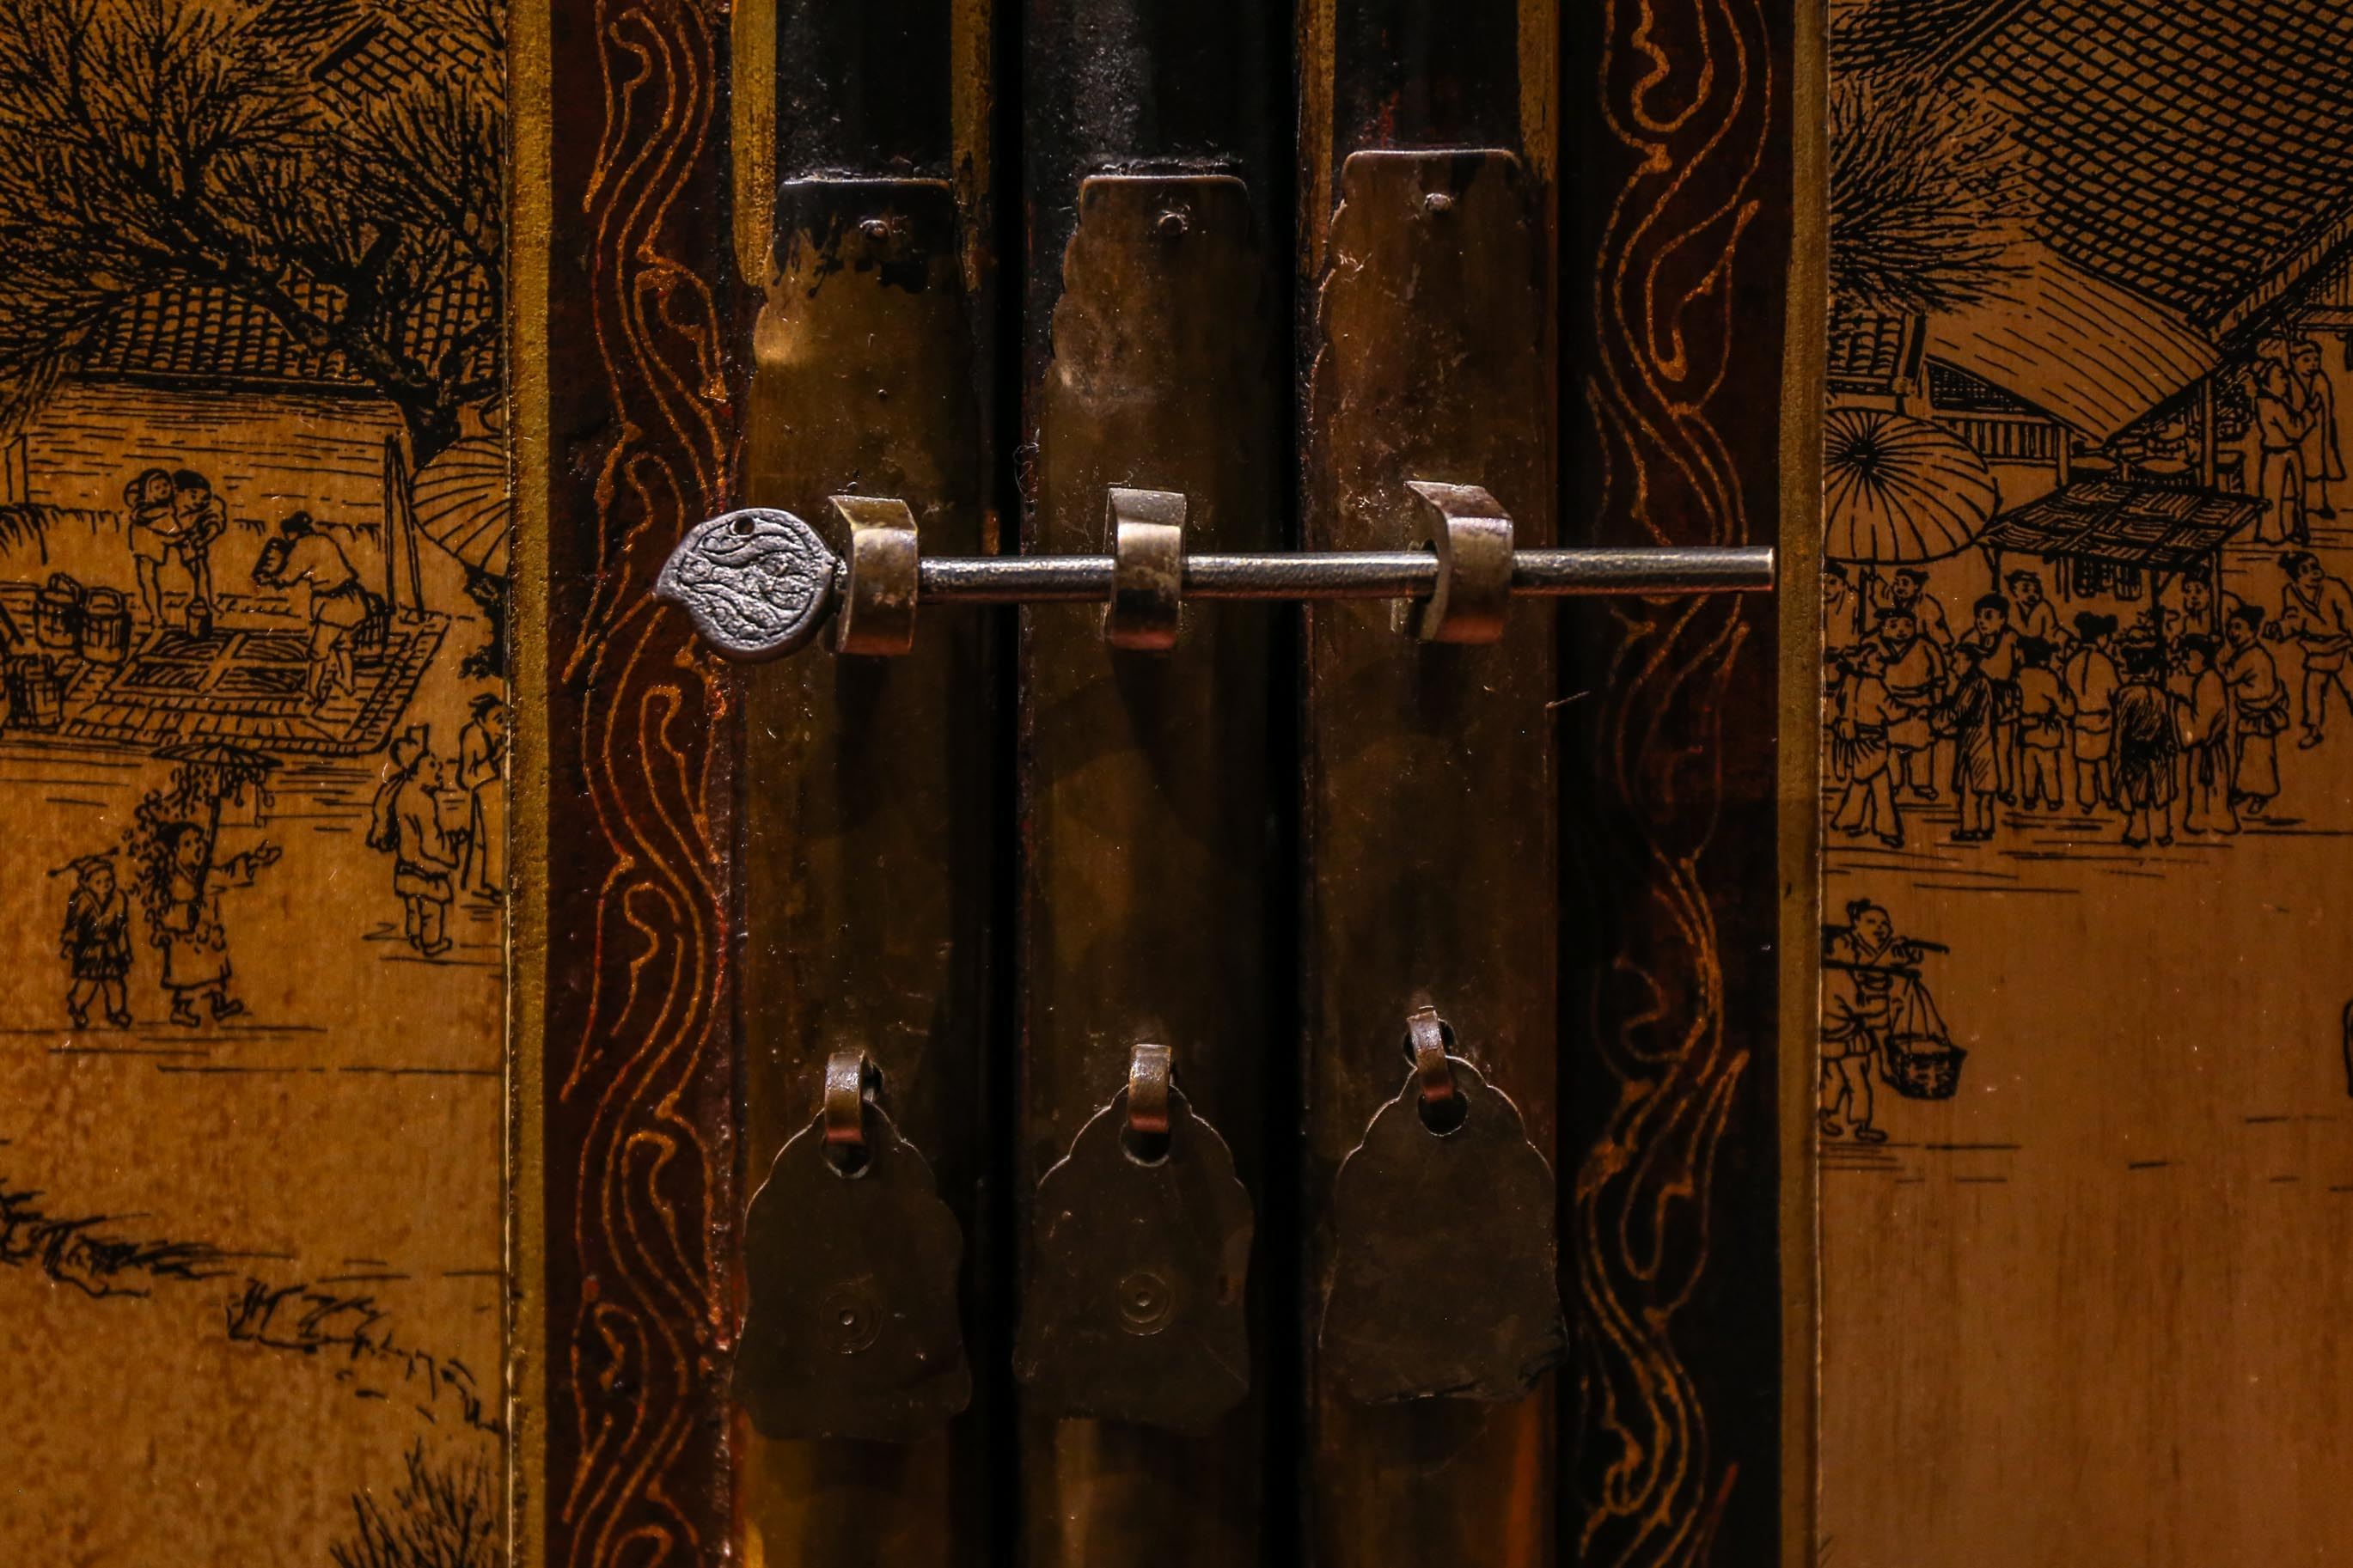 Detail of Antique Chinese Hardware Yangon Myanmar (Burma) Asia Antiques Buying Tours with The Antiques Diva